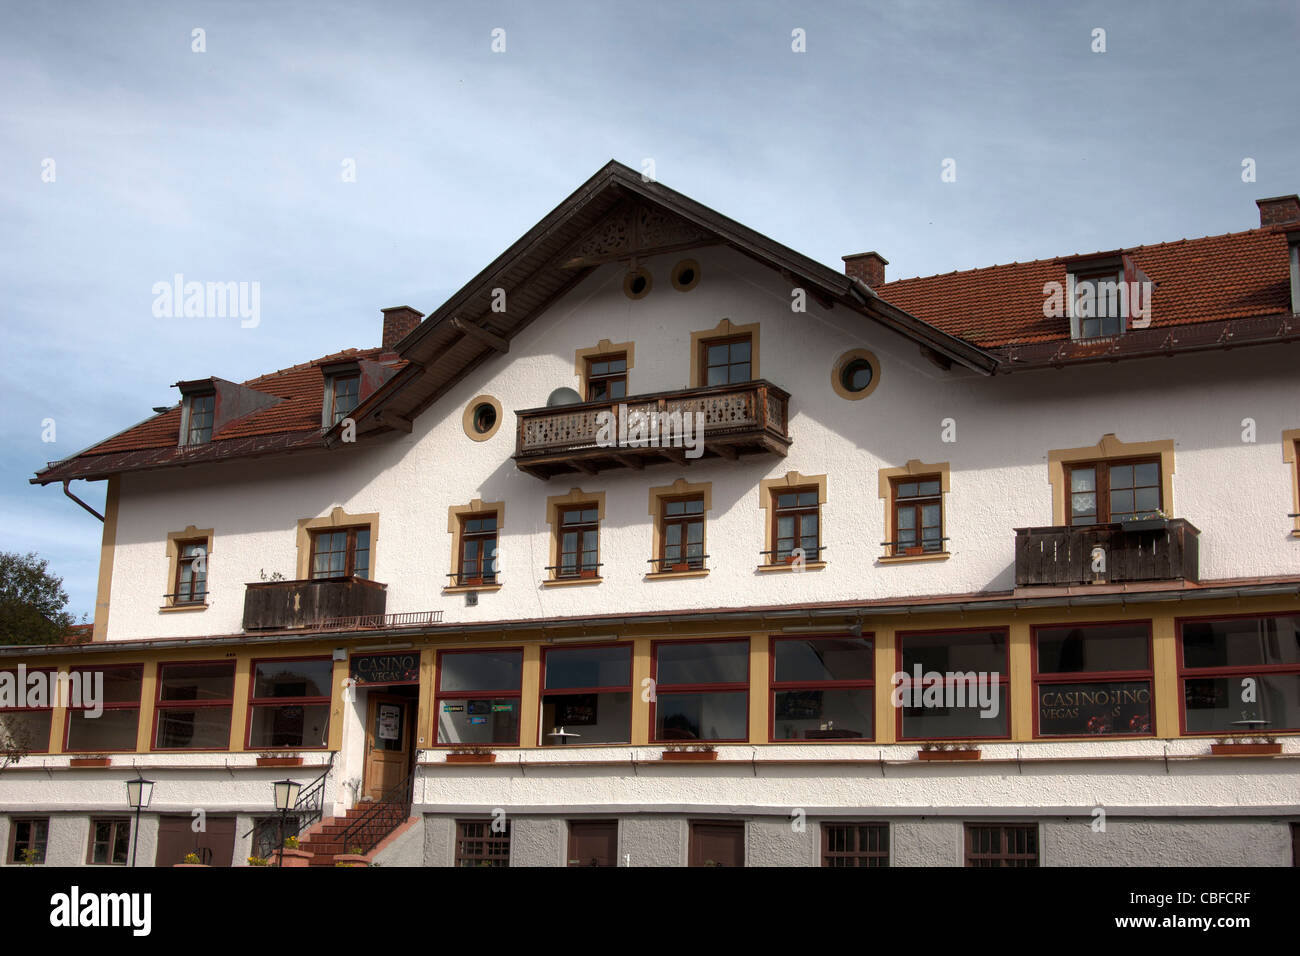 A typical wooden house in Schliersee,Germany. - Stock Image